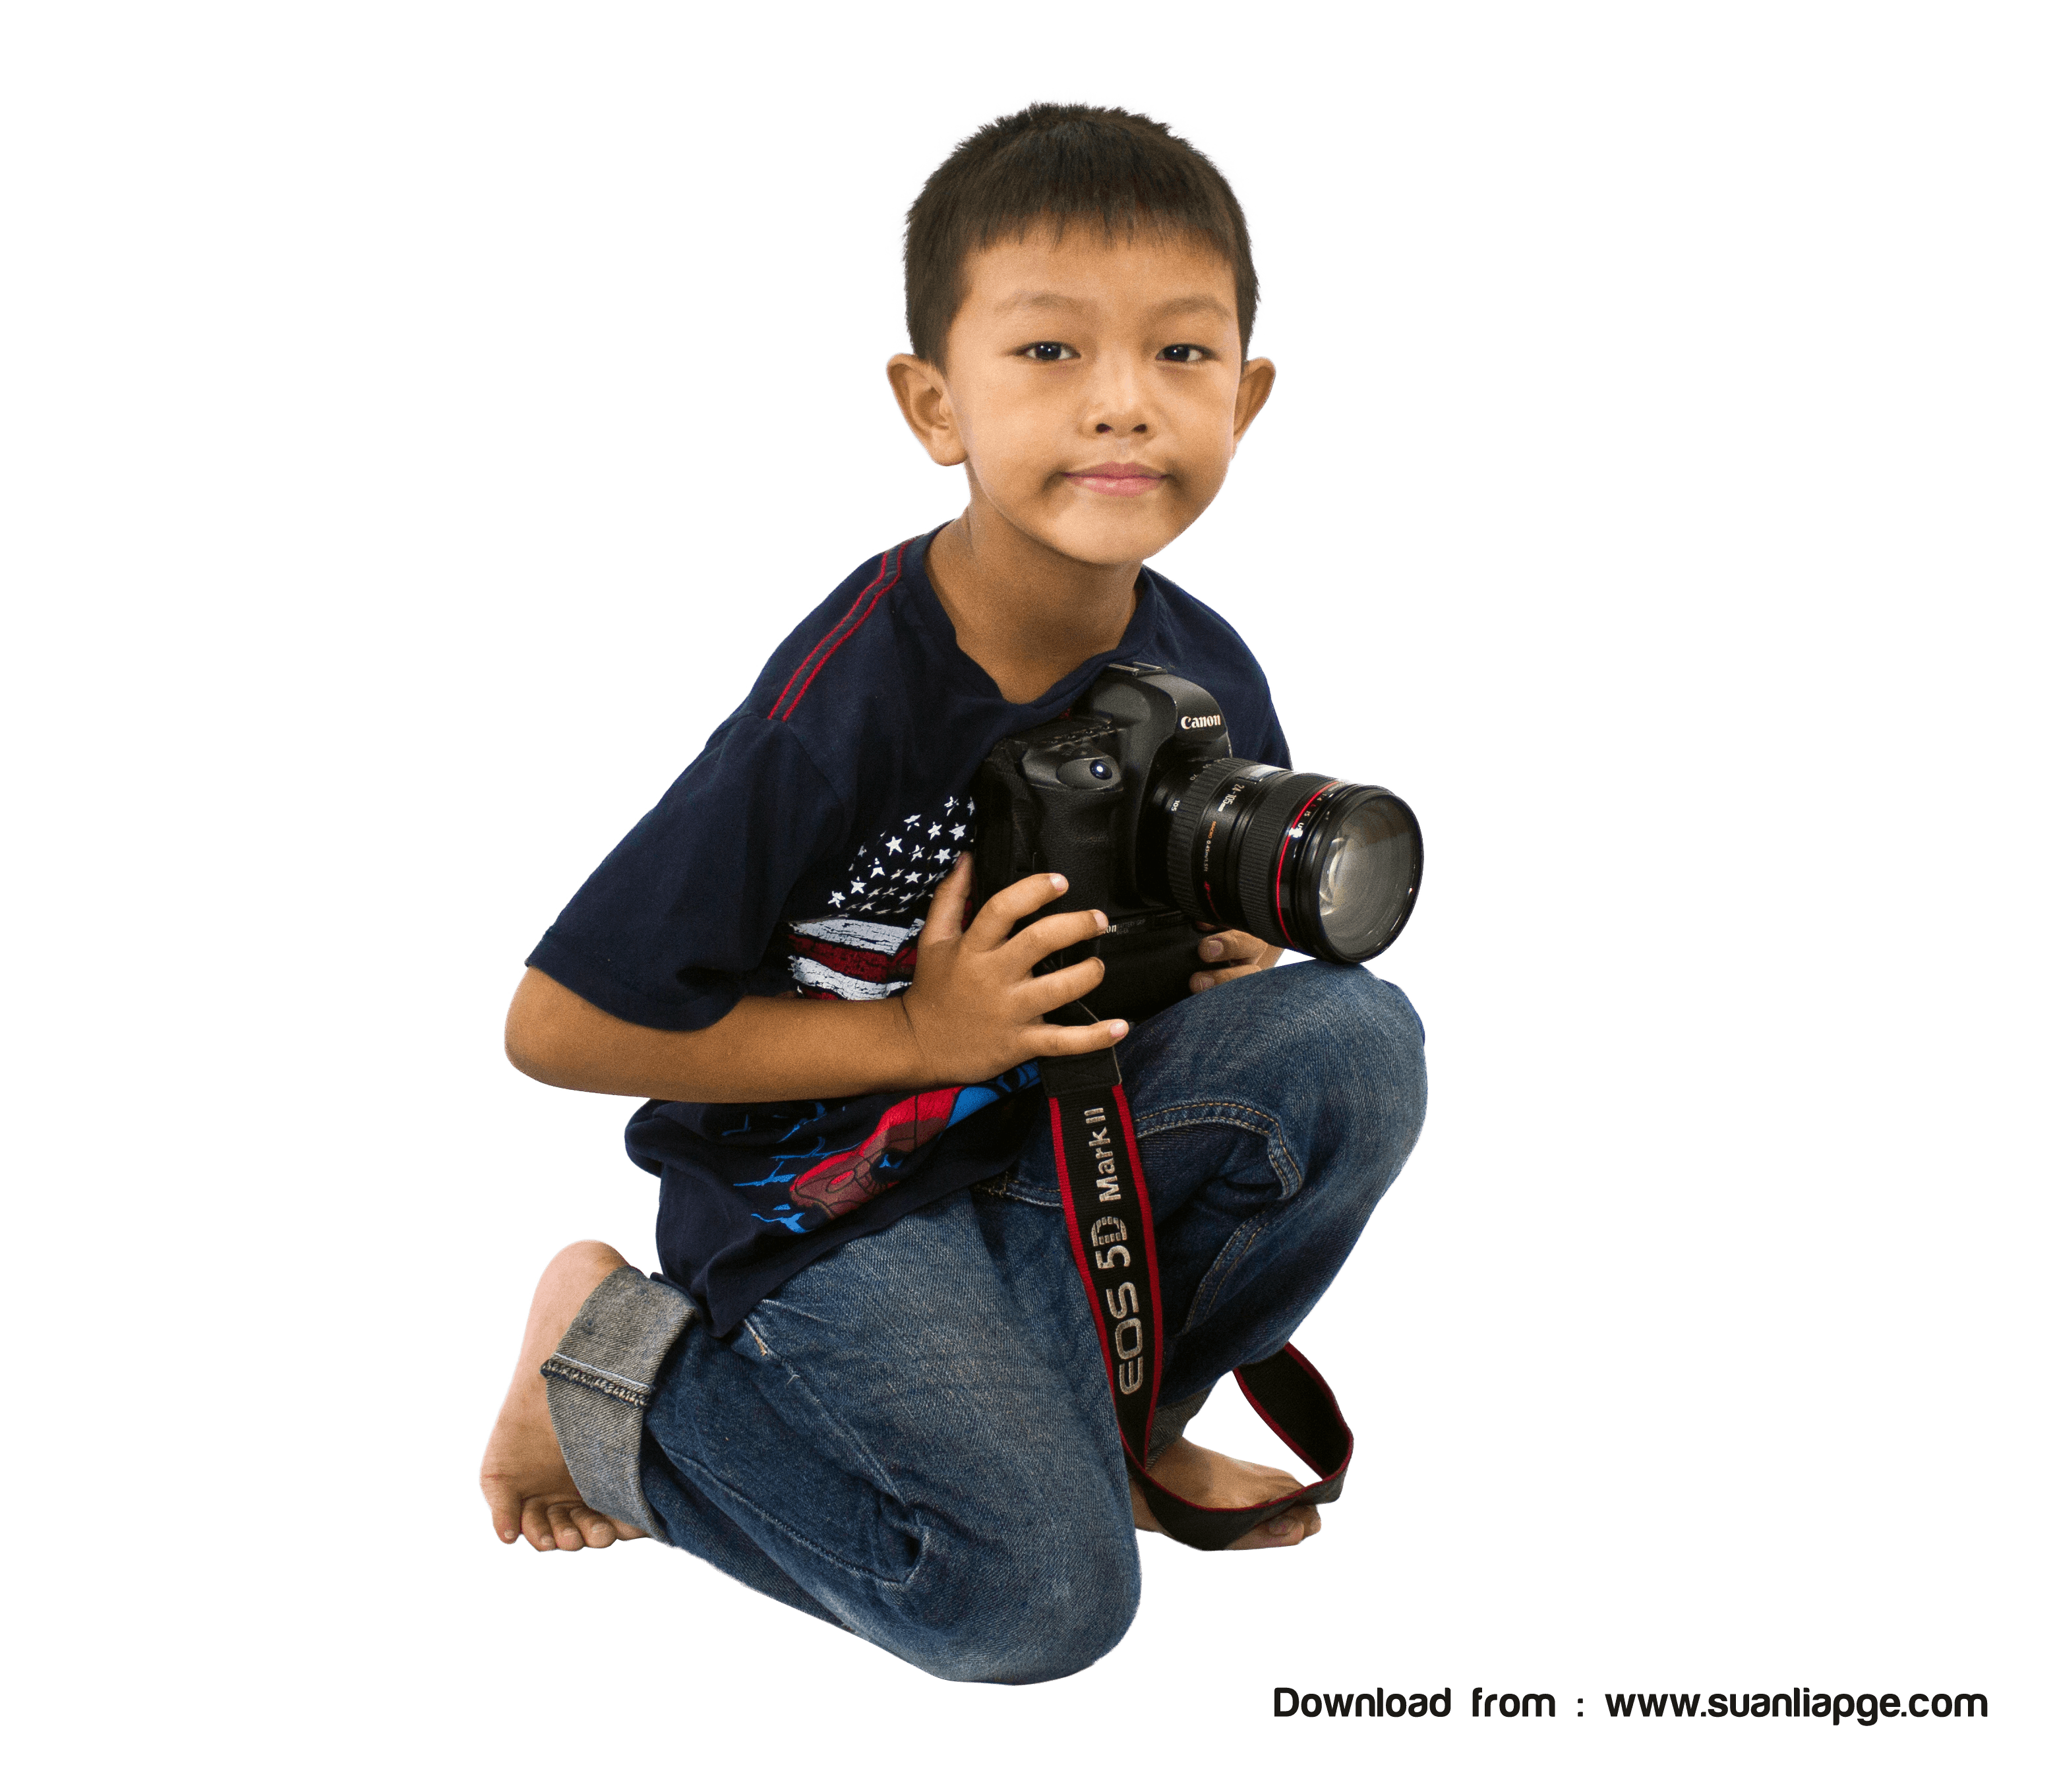 Boy sitting png. Suanlian page download large